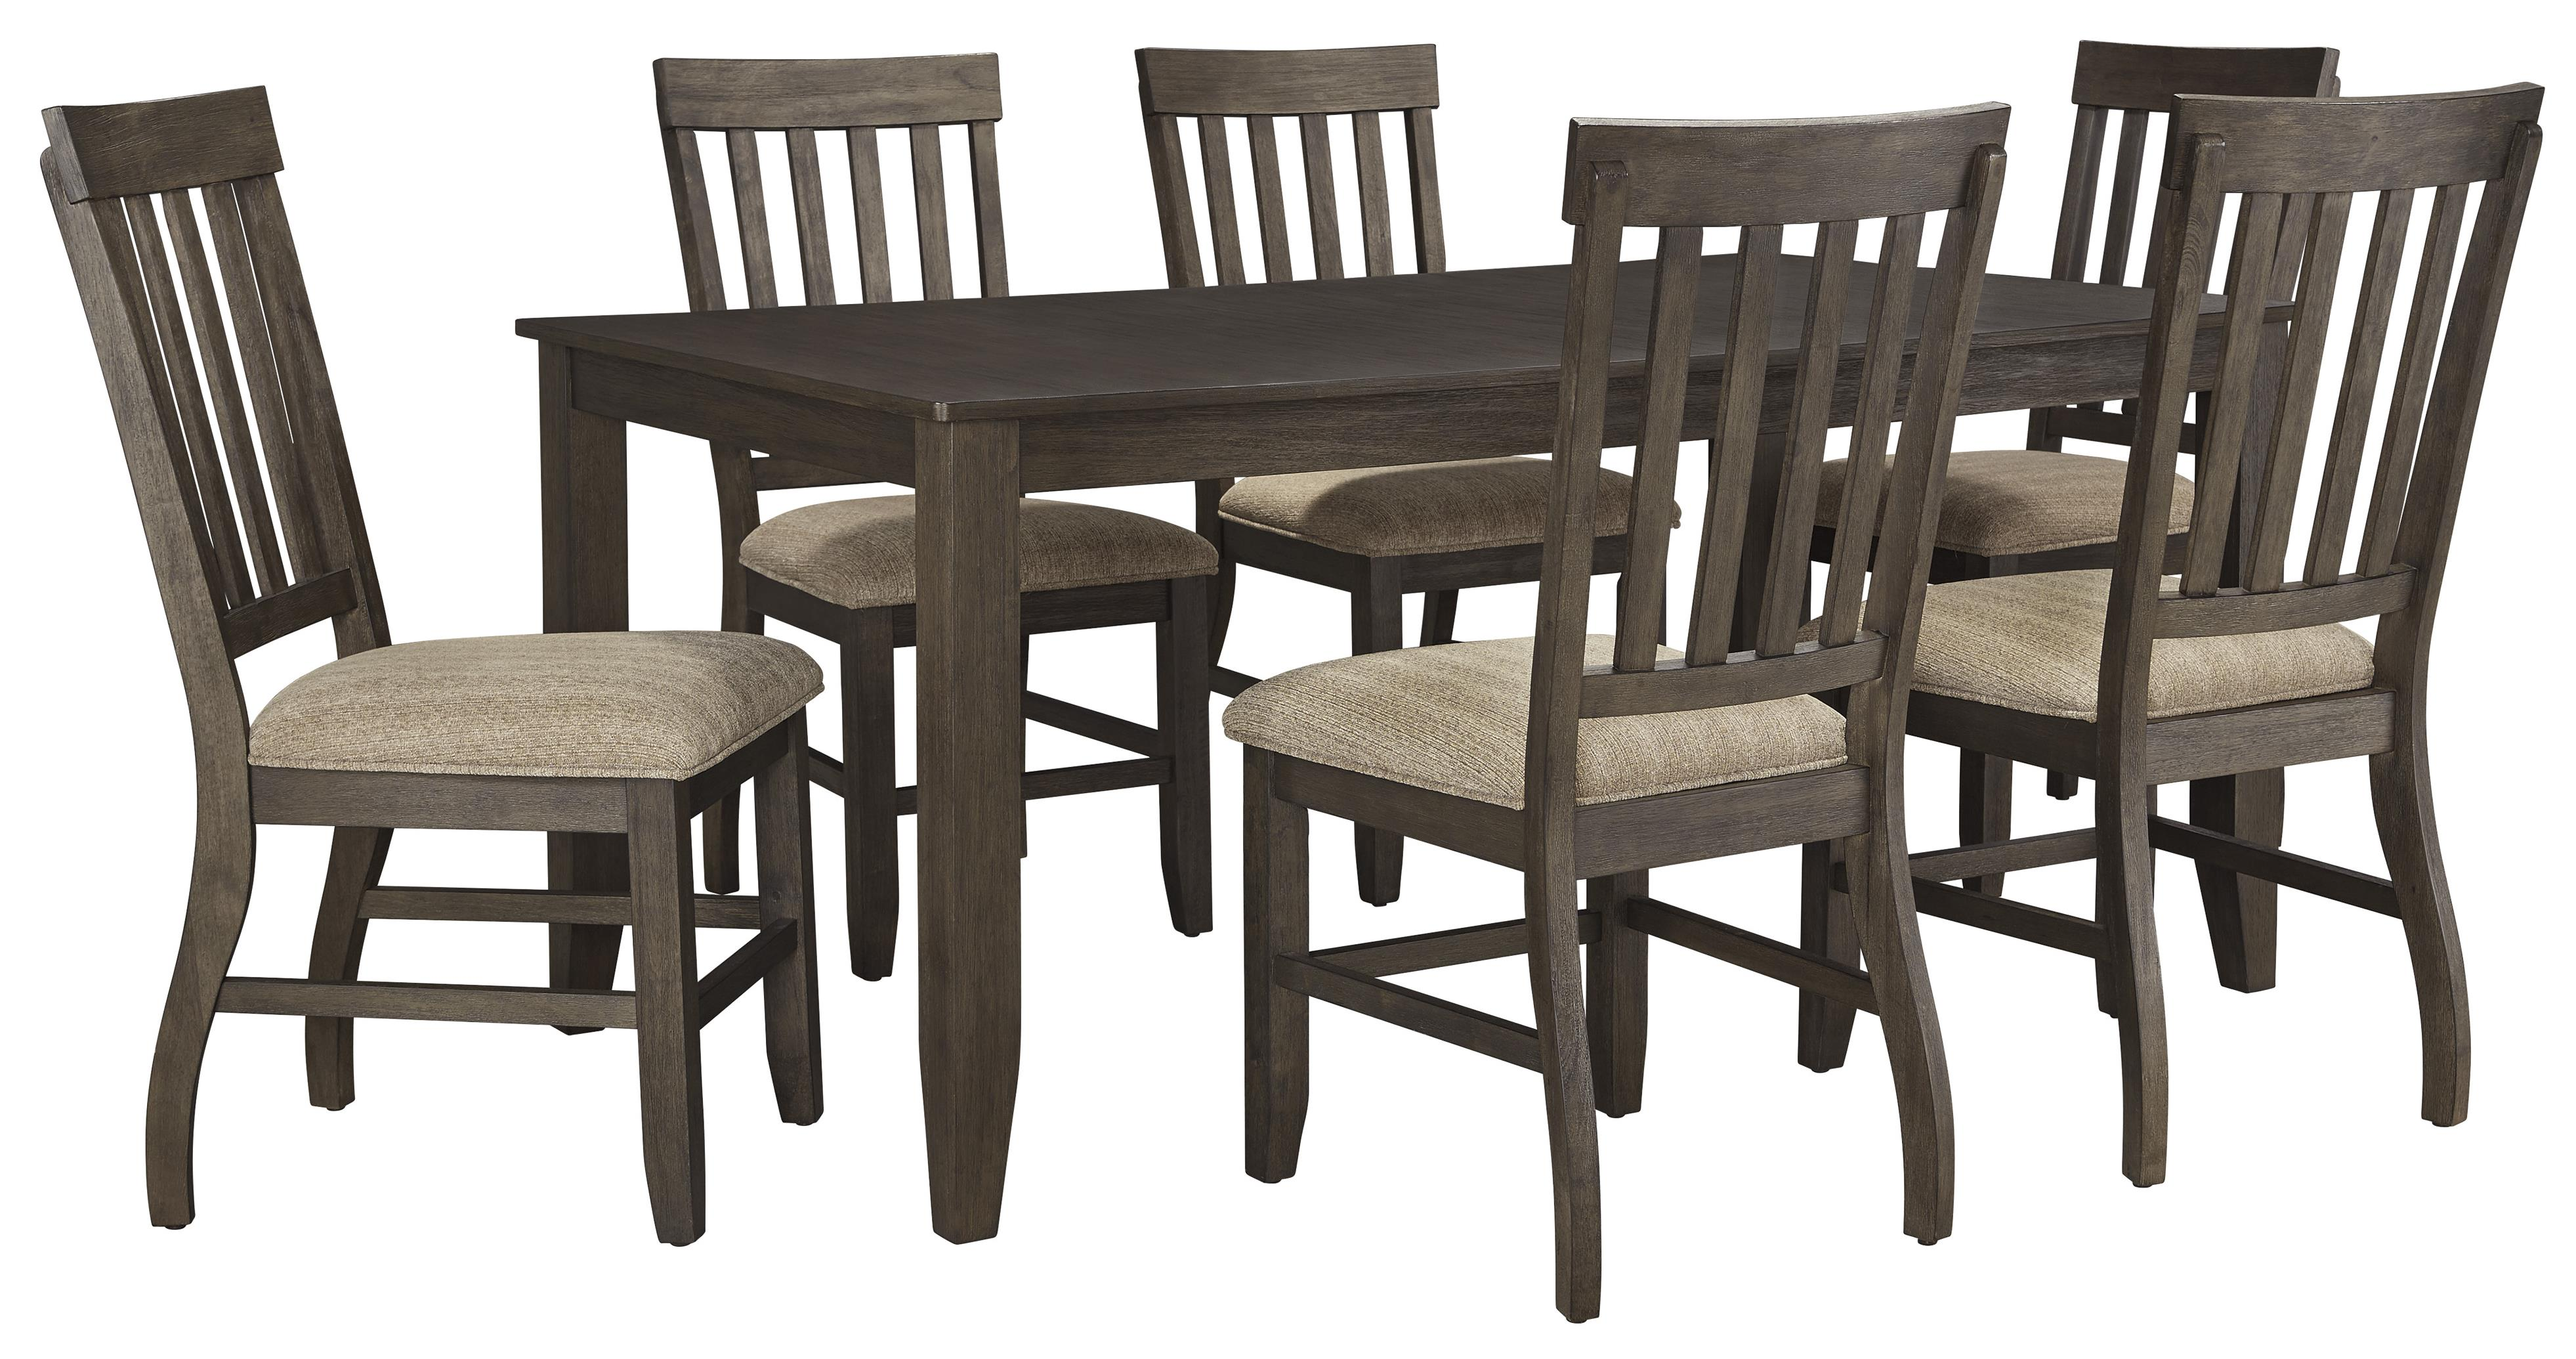 7 piece rectangular dining table set by signature design by ashley wolf and gardiner wolf